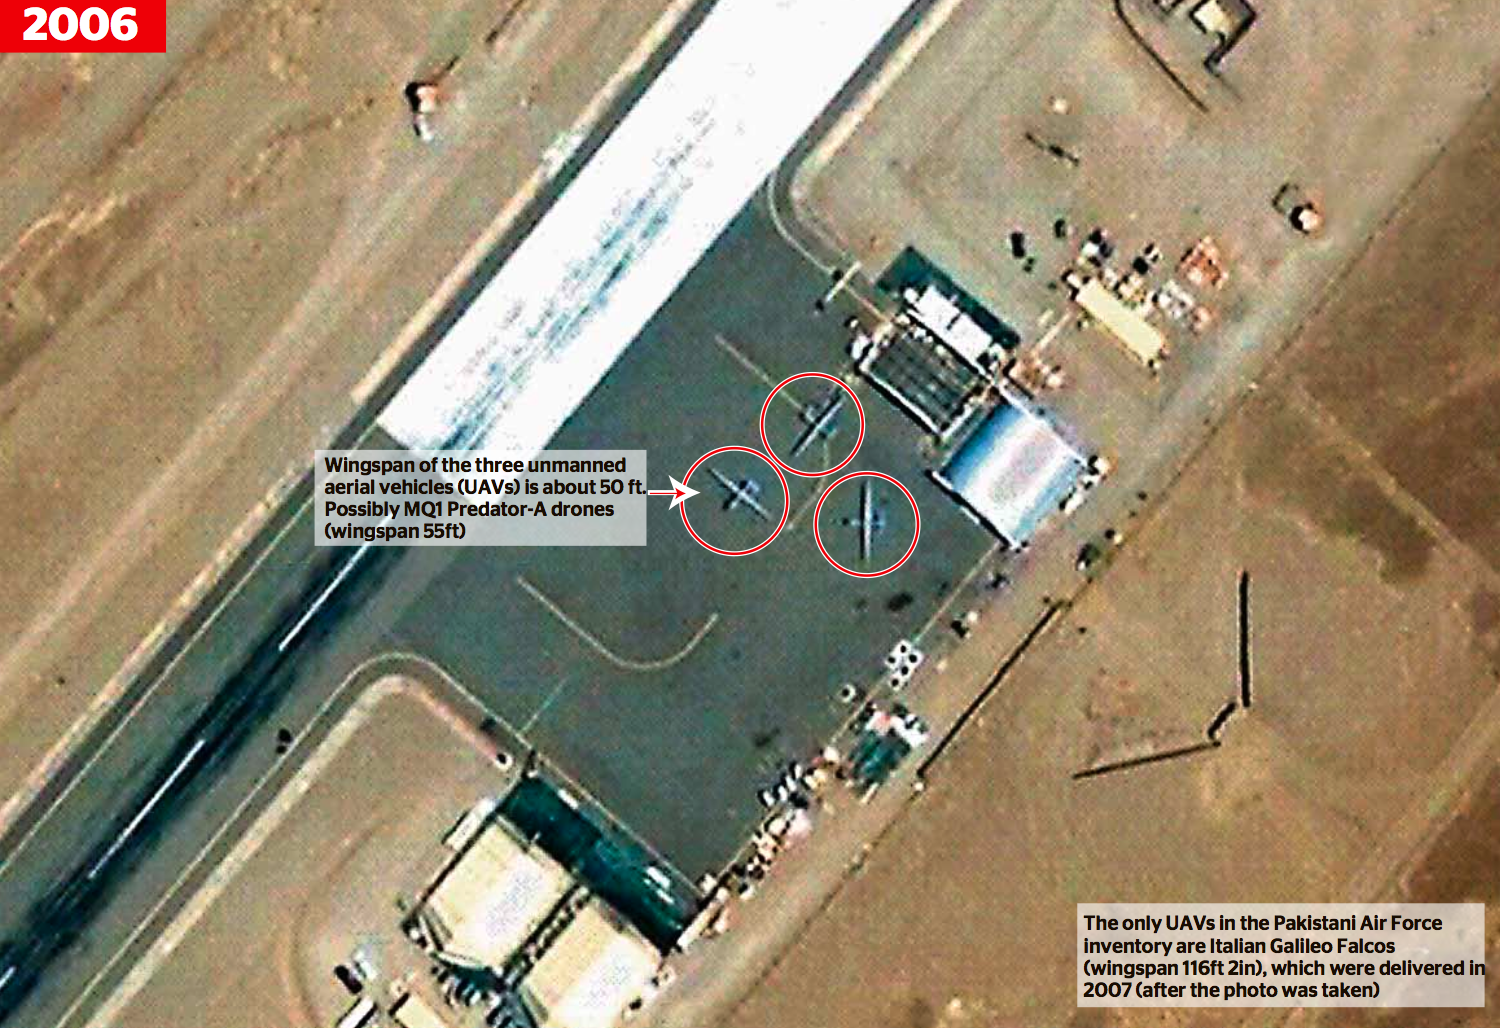 Censorship In Google Earth The Case Of The Missing Predator Drones - Google maps drone